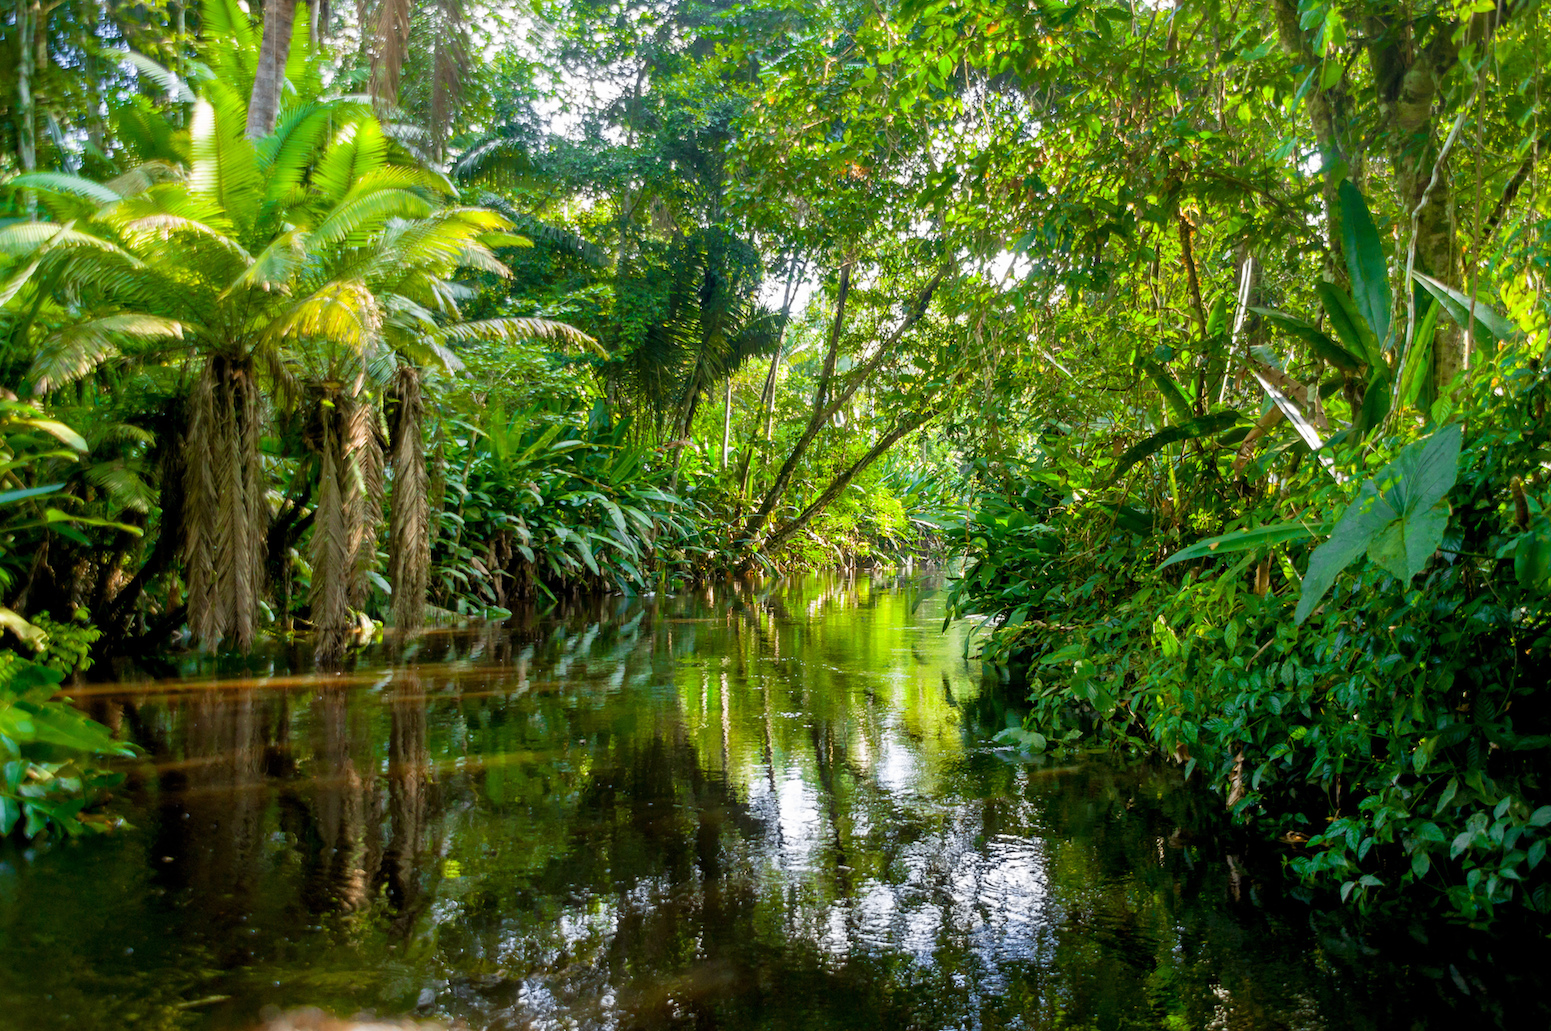 A new study has found that many diverse tropical species now found in Latin America originated in Amazonian rainforests.